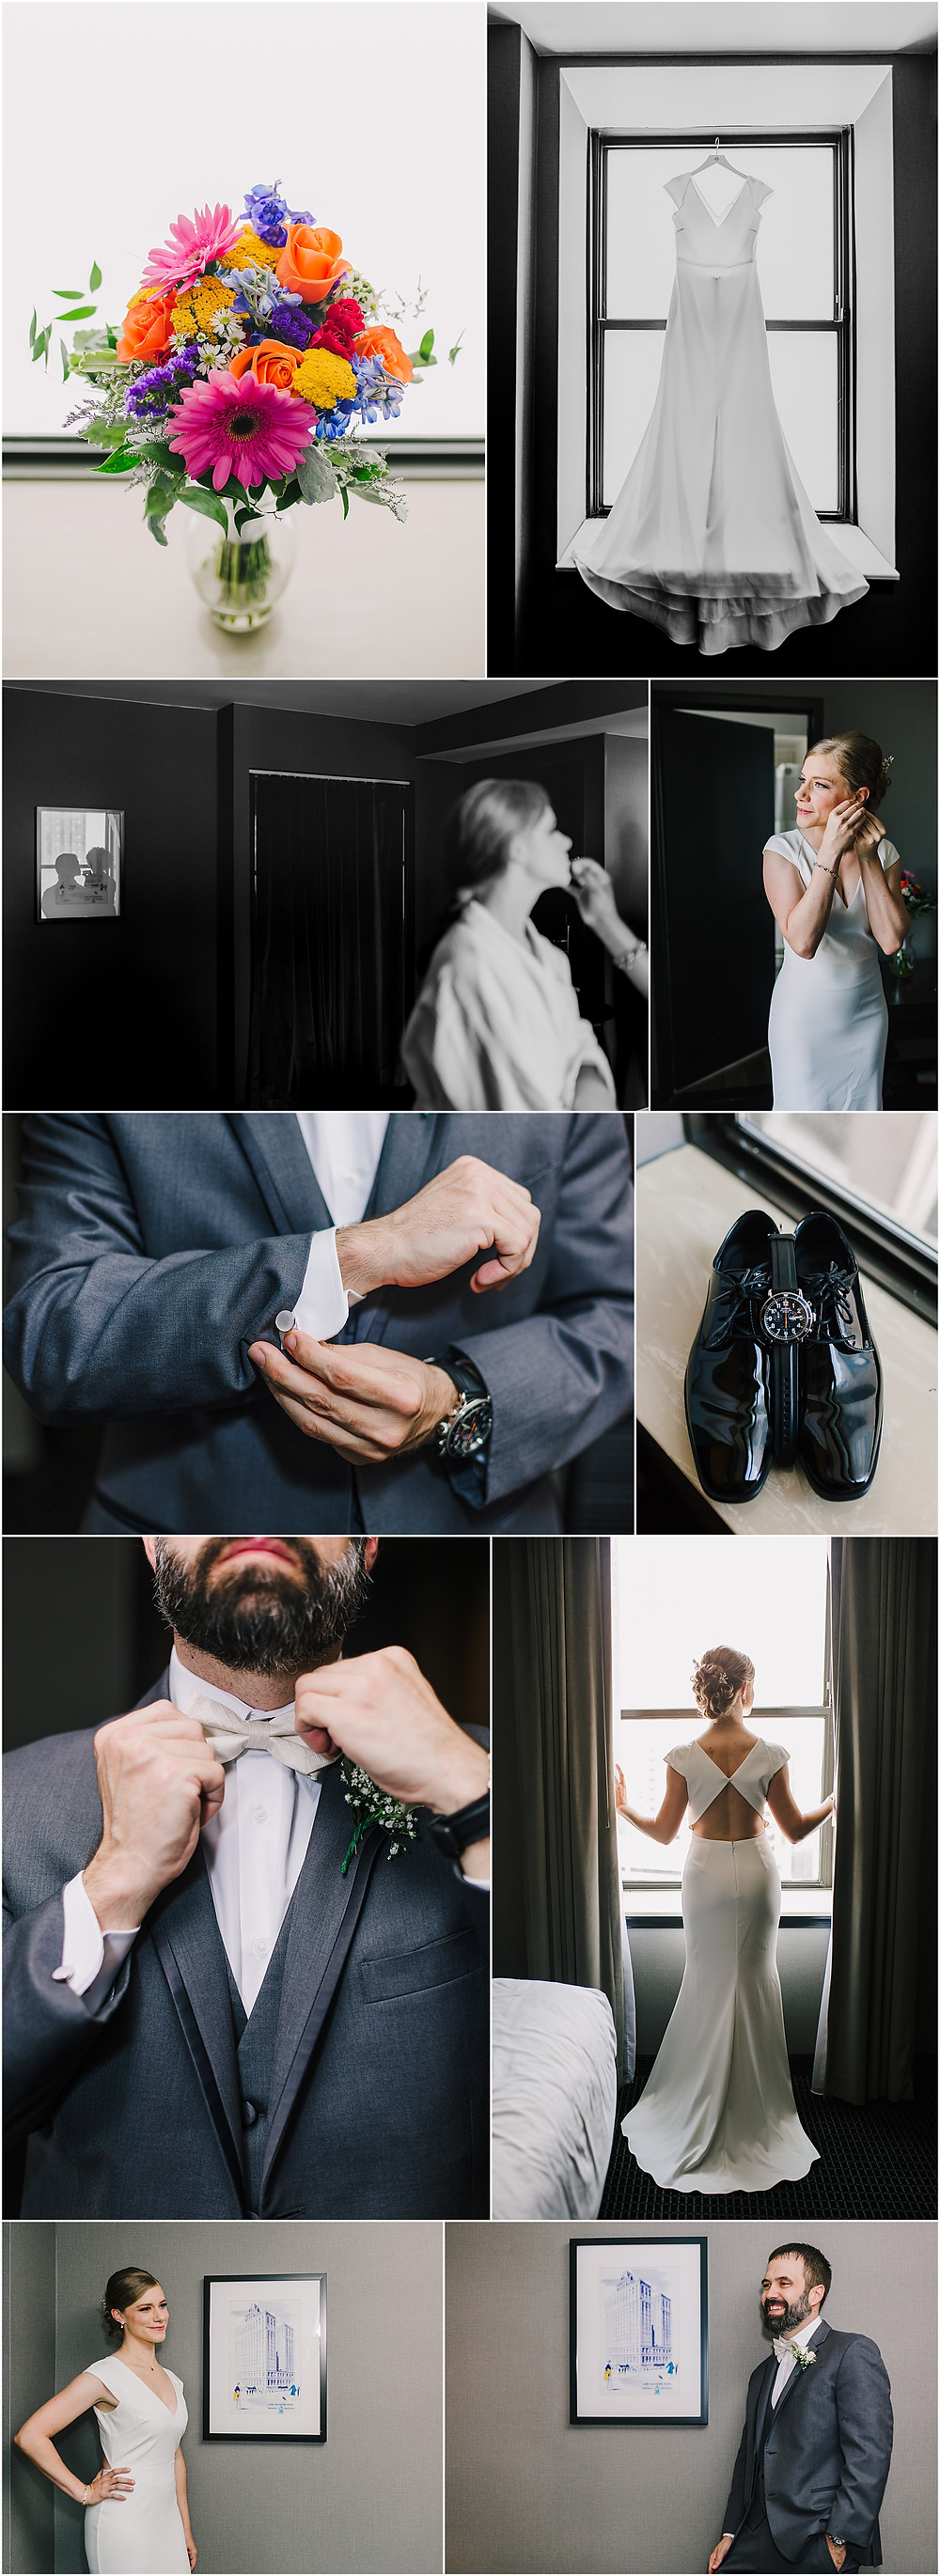 Wedding Day Prep at Lord Baltimore Hotel - Baltimore Wedding Photography